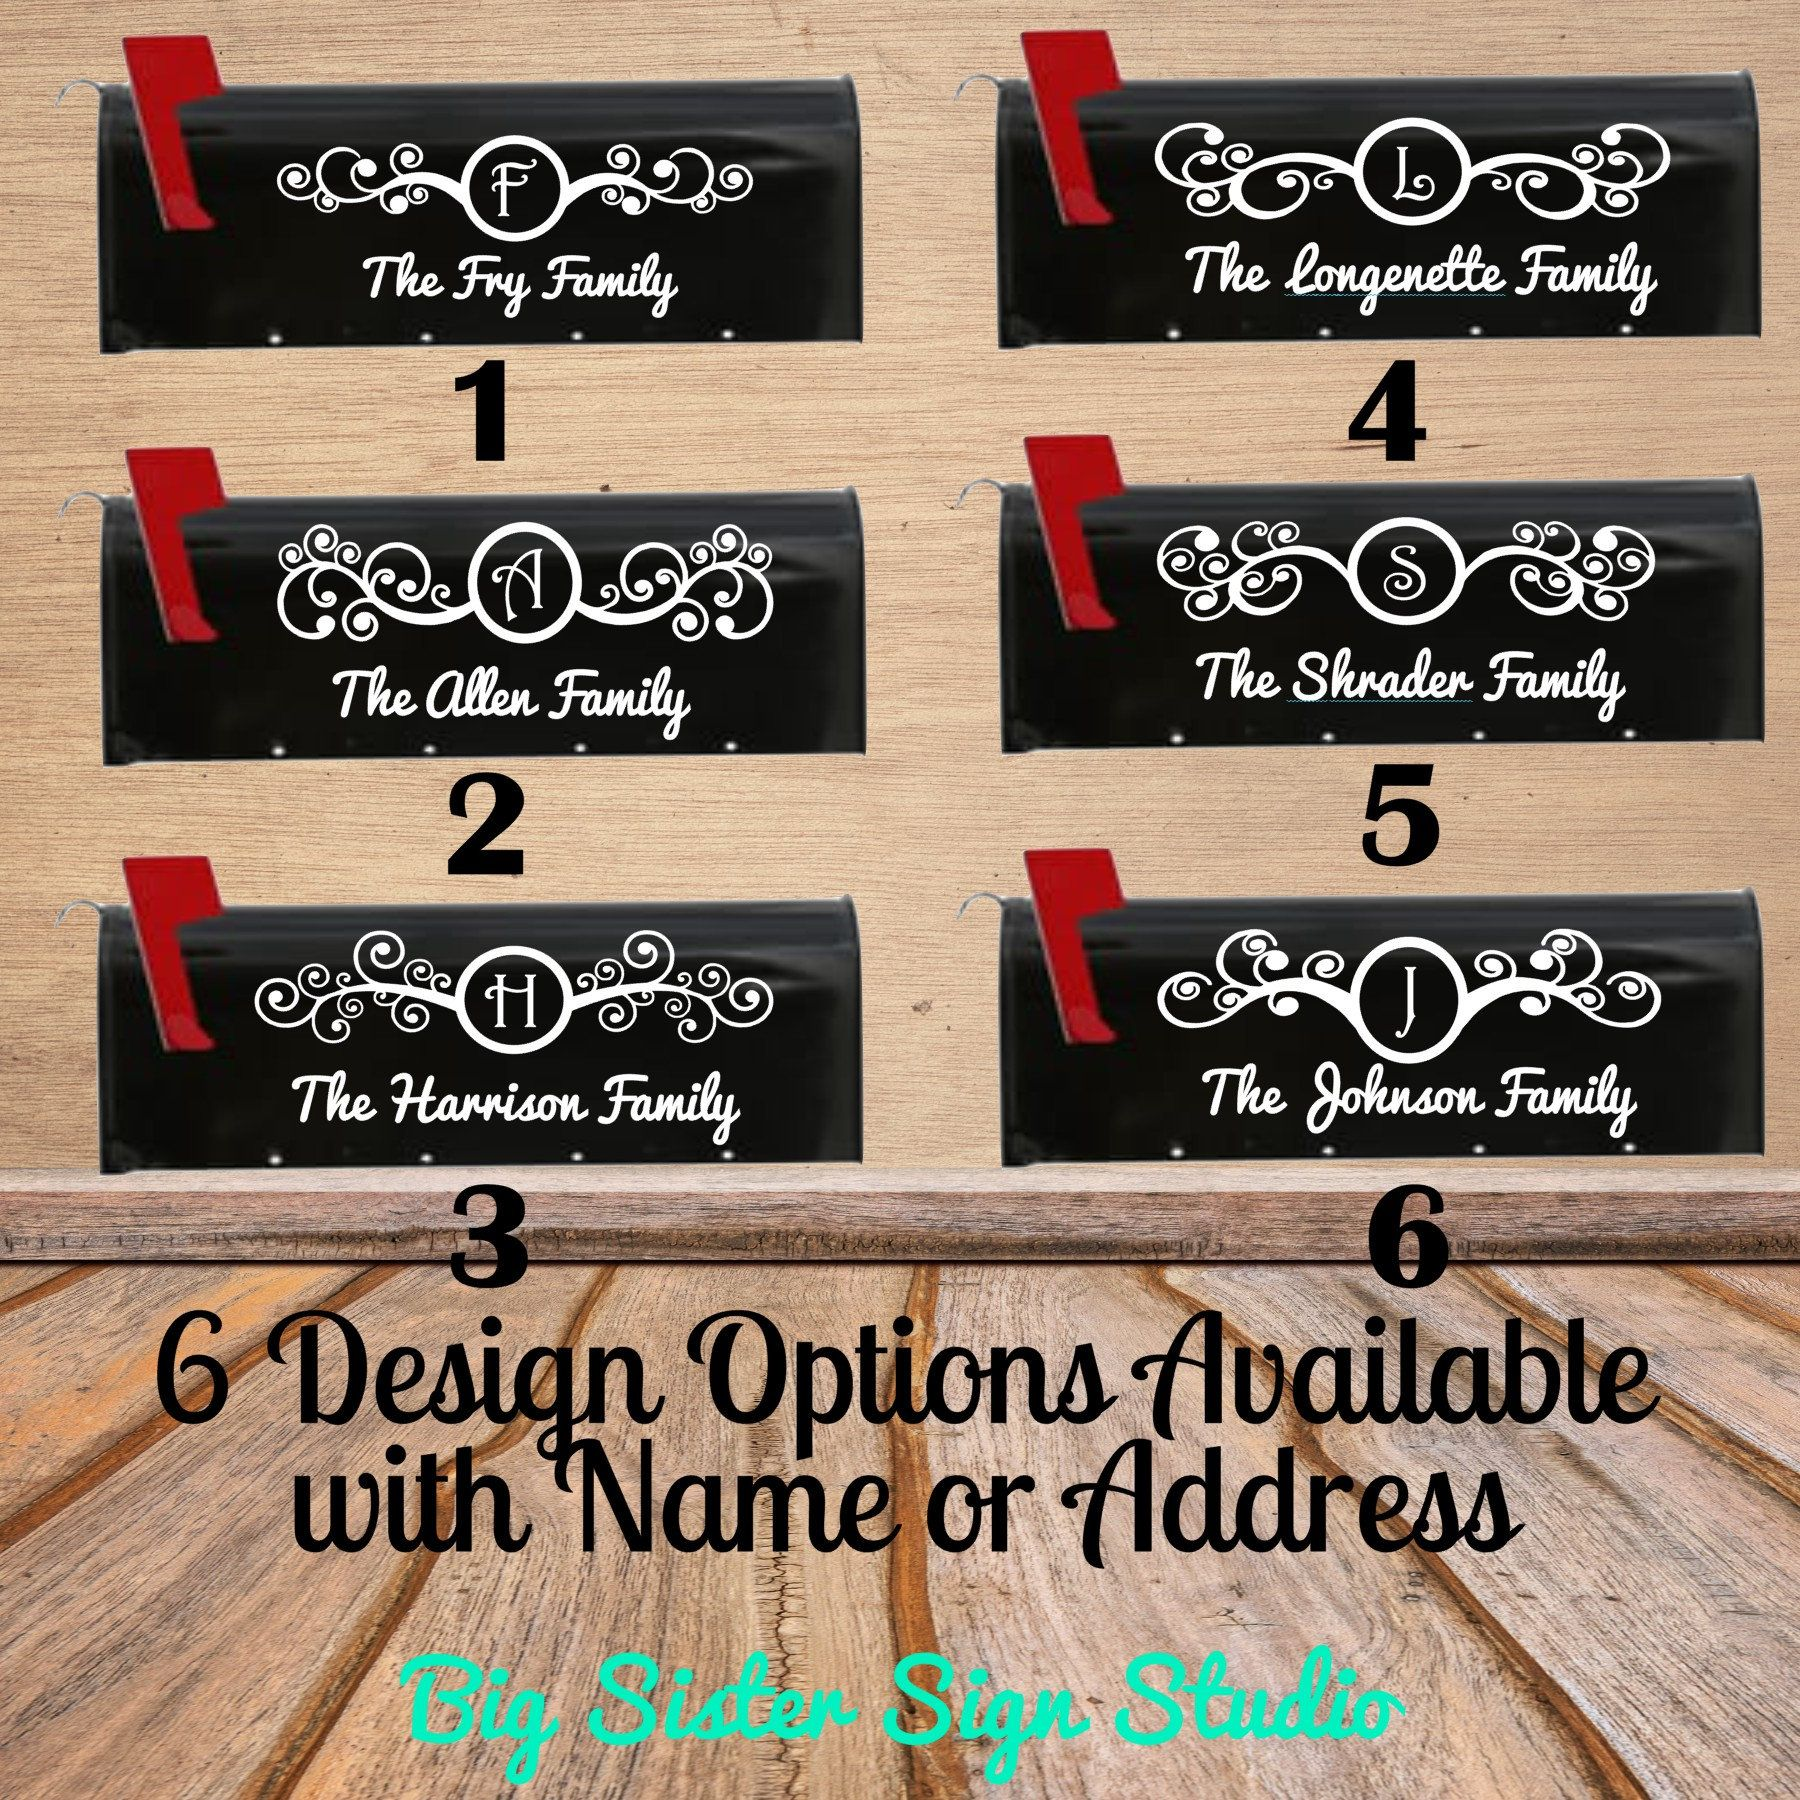 Personalized Mail Box Decals Address Decals Custom Mail Box Numbers Custom Mailboxes Mailbox Stickers Mailbox Numbers